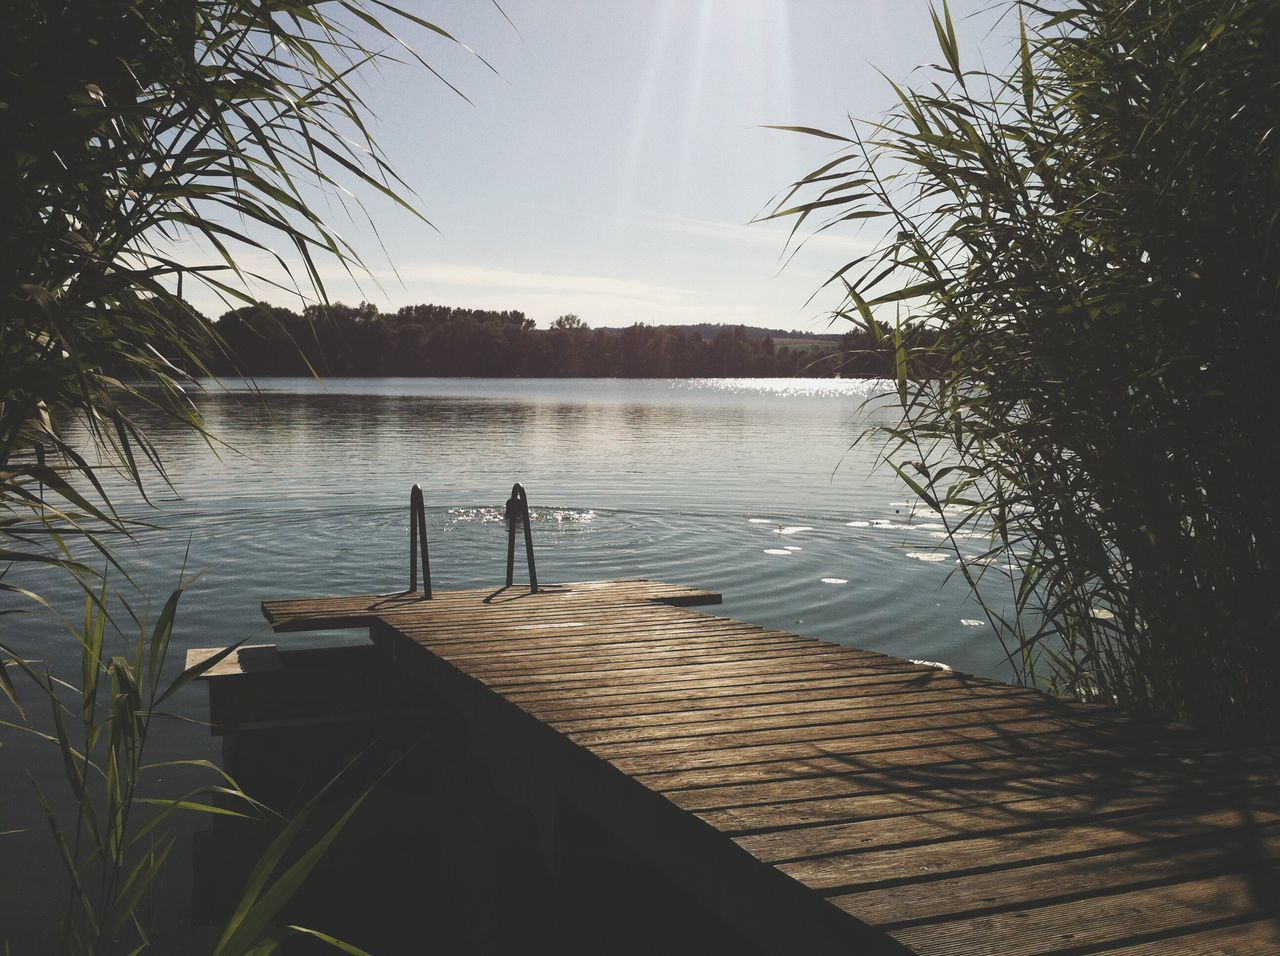 Water Lake Nature Leisure Activity Tranquility Tree Scenics Beauty In Nature Silhouette Men Stage Landing Stage Jetty Wood Summer Spring Youth Reeds Rushes Calm Reed Swimming Swimm River Blue Sky Sommergefühle EyeEm Selects